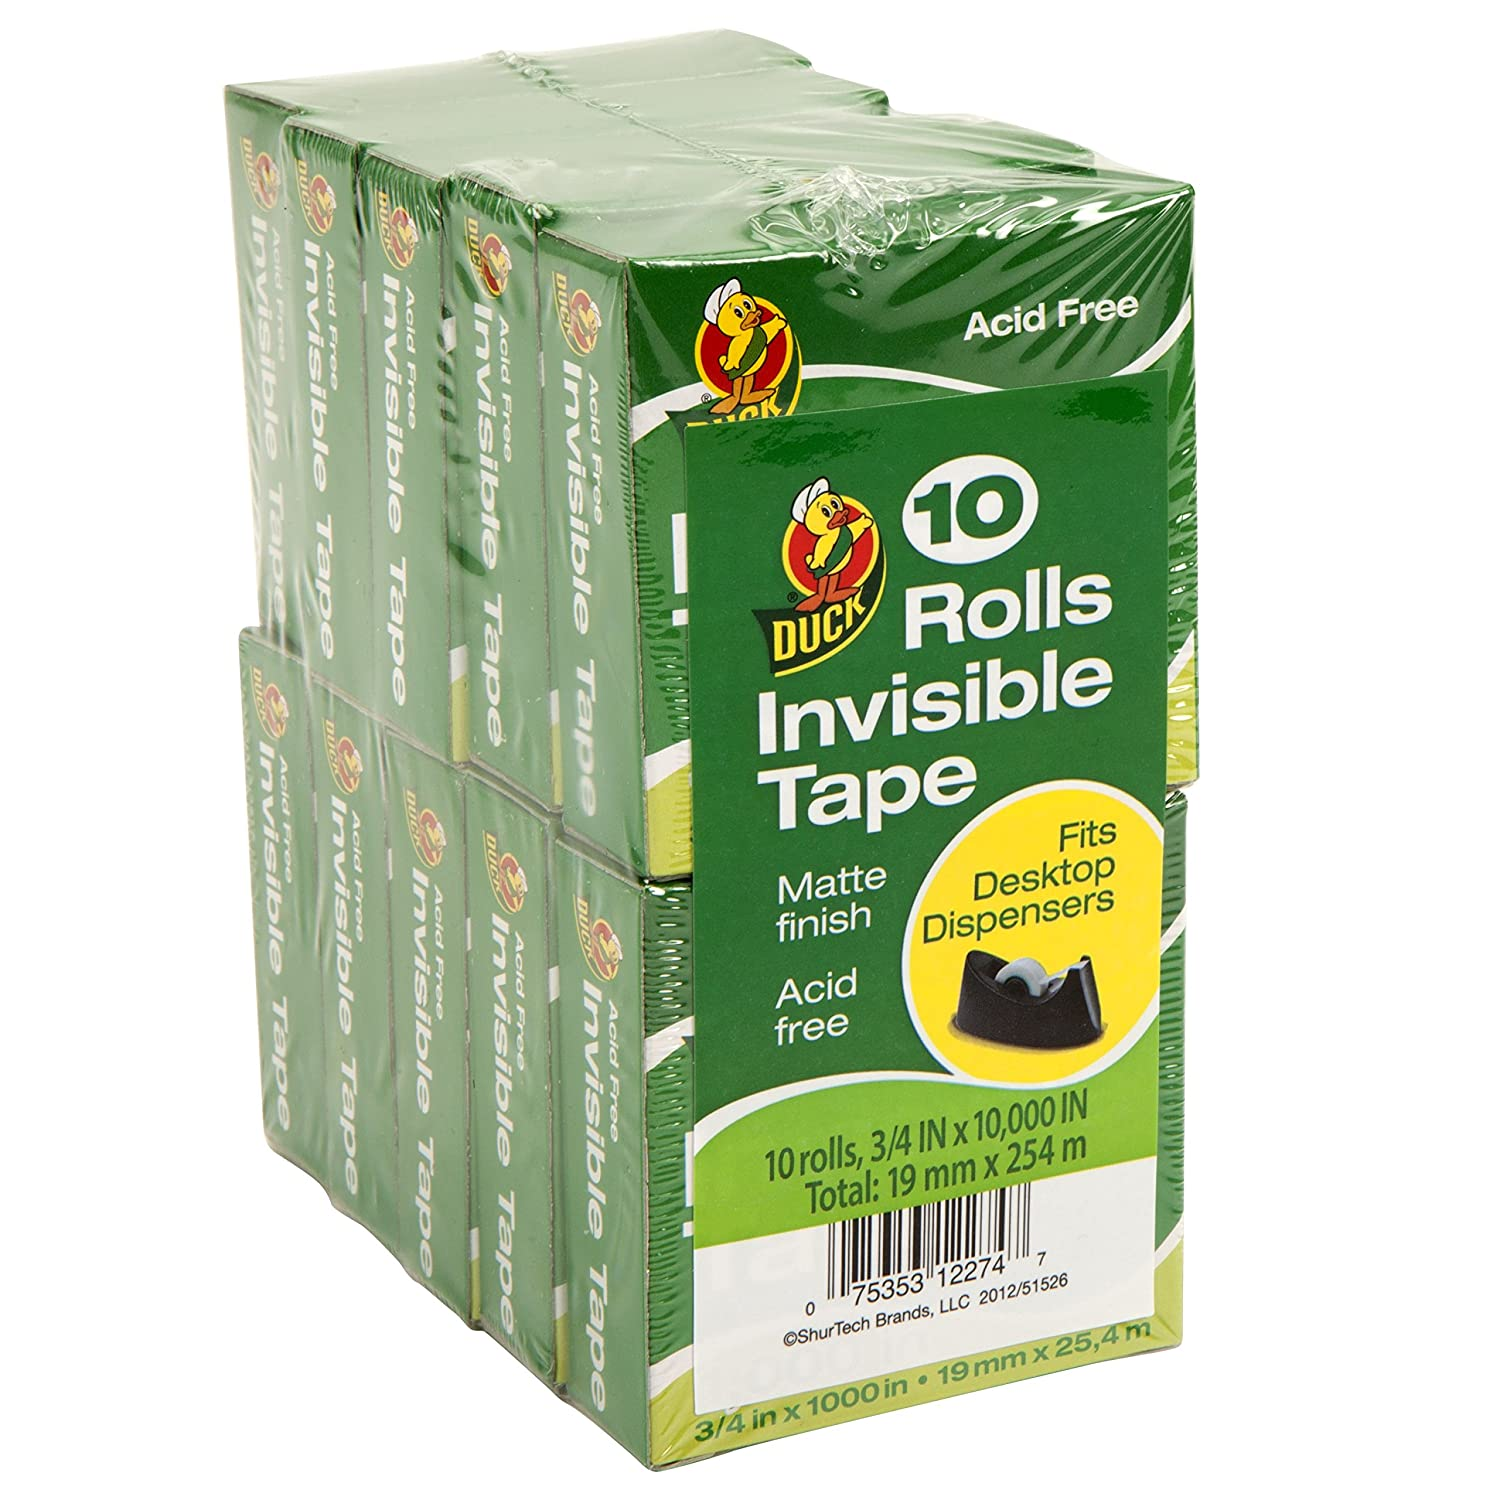 Duck Brand Matte Finish Invisible Tape, 0.75 Inches x 1000 Inches, Clear, 10 Pack (281804)